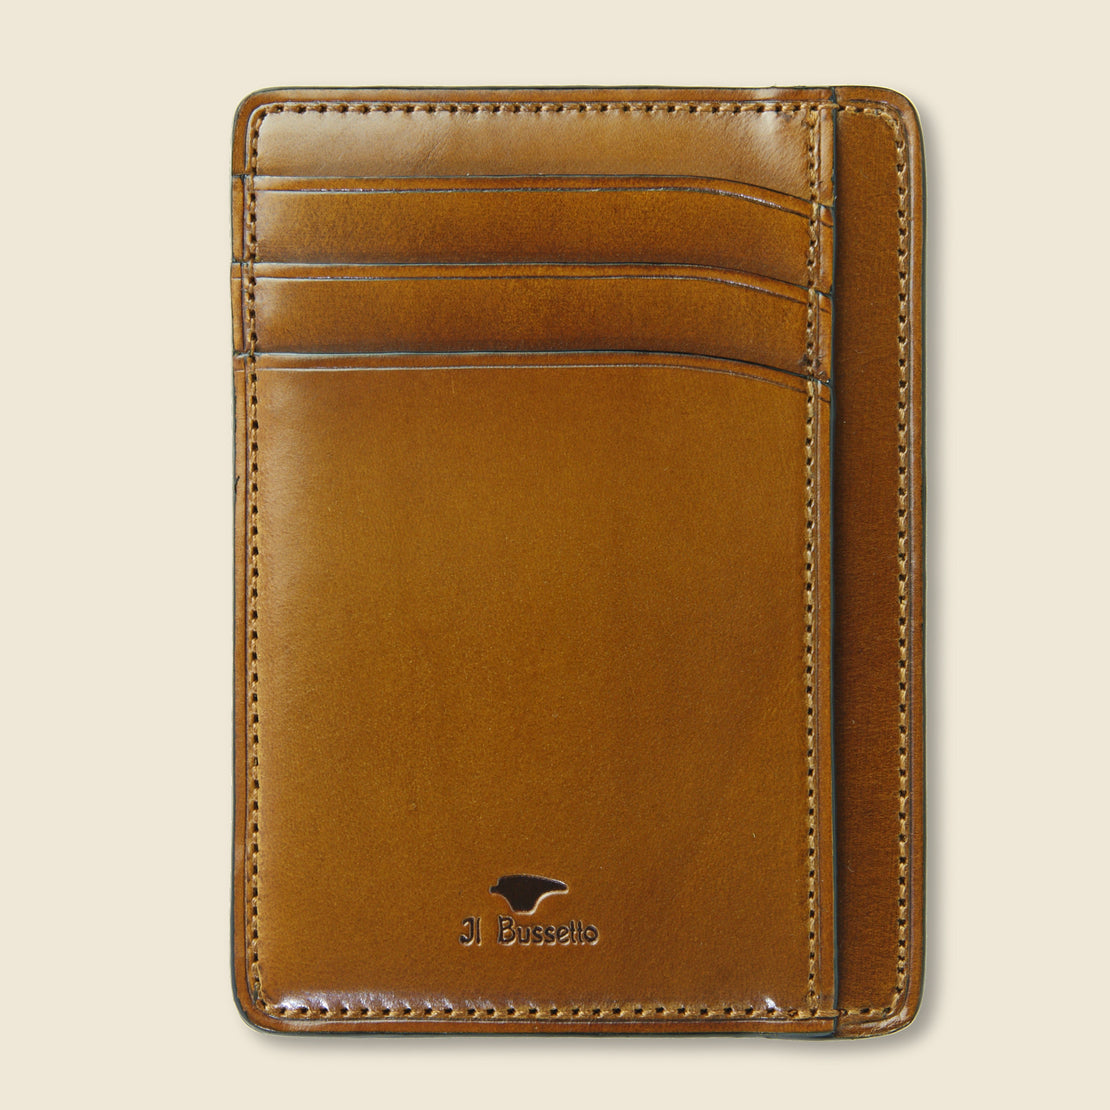 Il Bussetto Card and Document Case - Camel